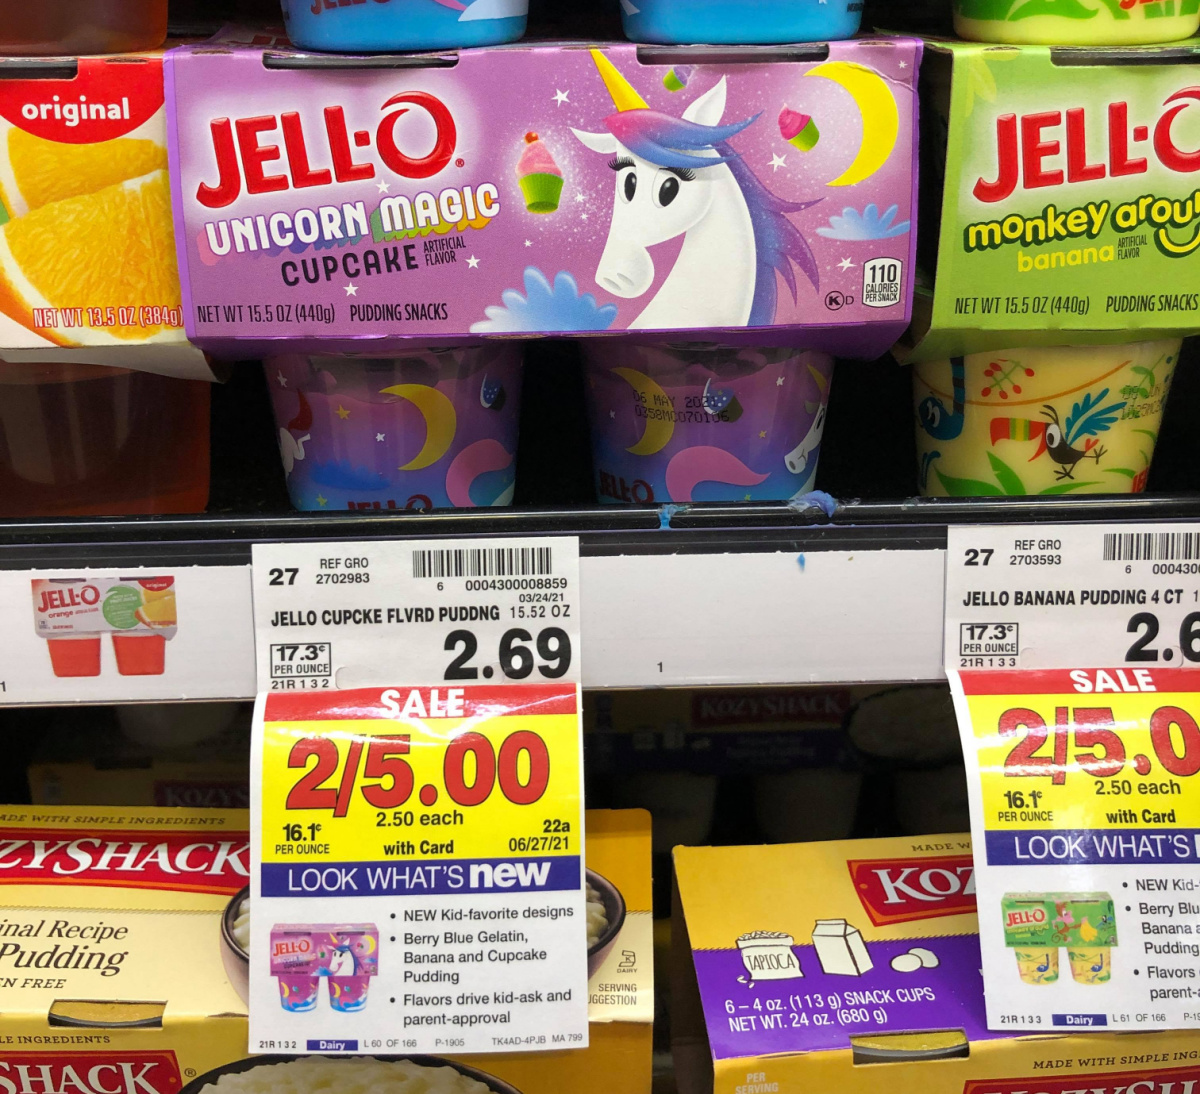 Jell-O Unicorn Magic Cupcake Pudding Kroger